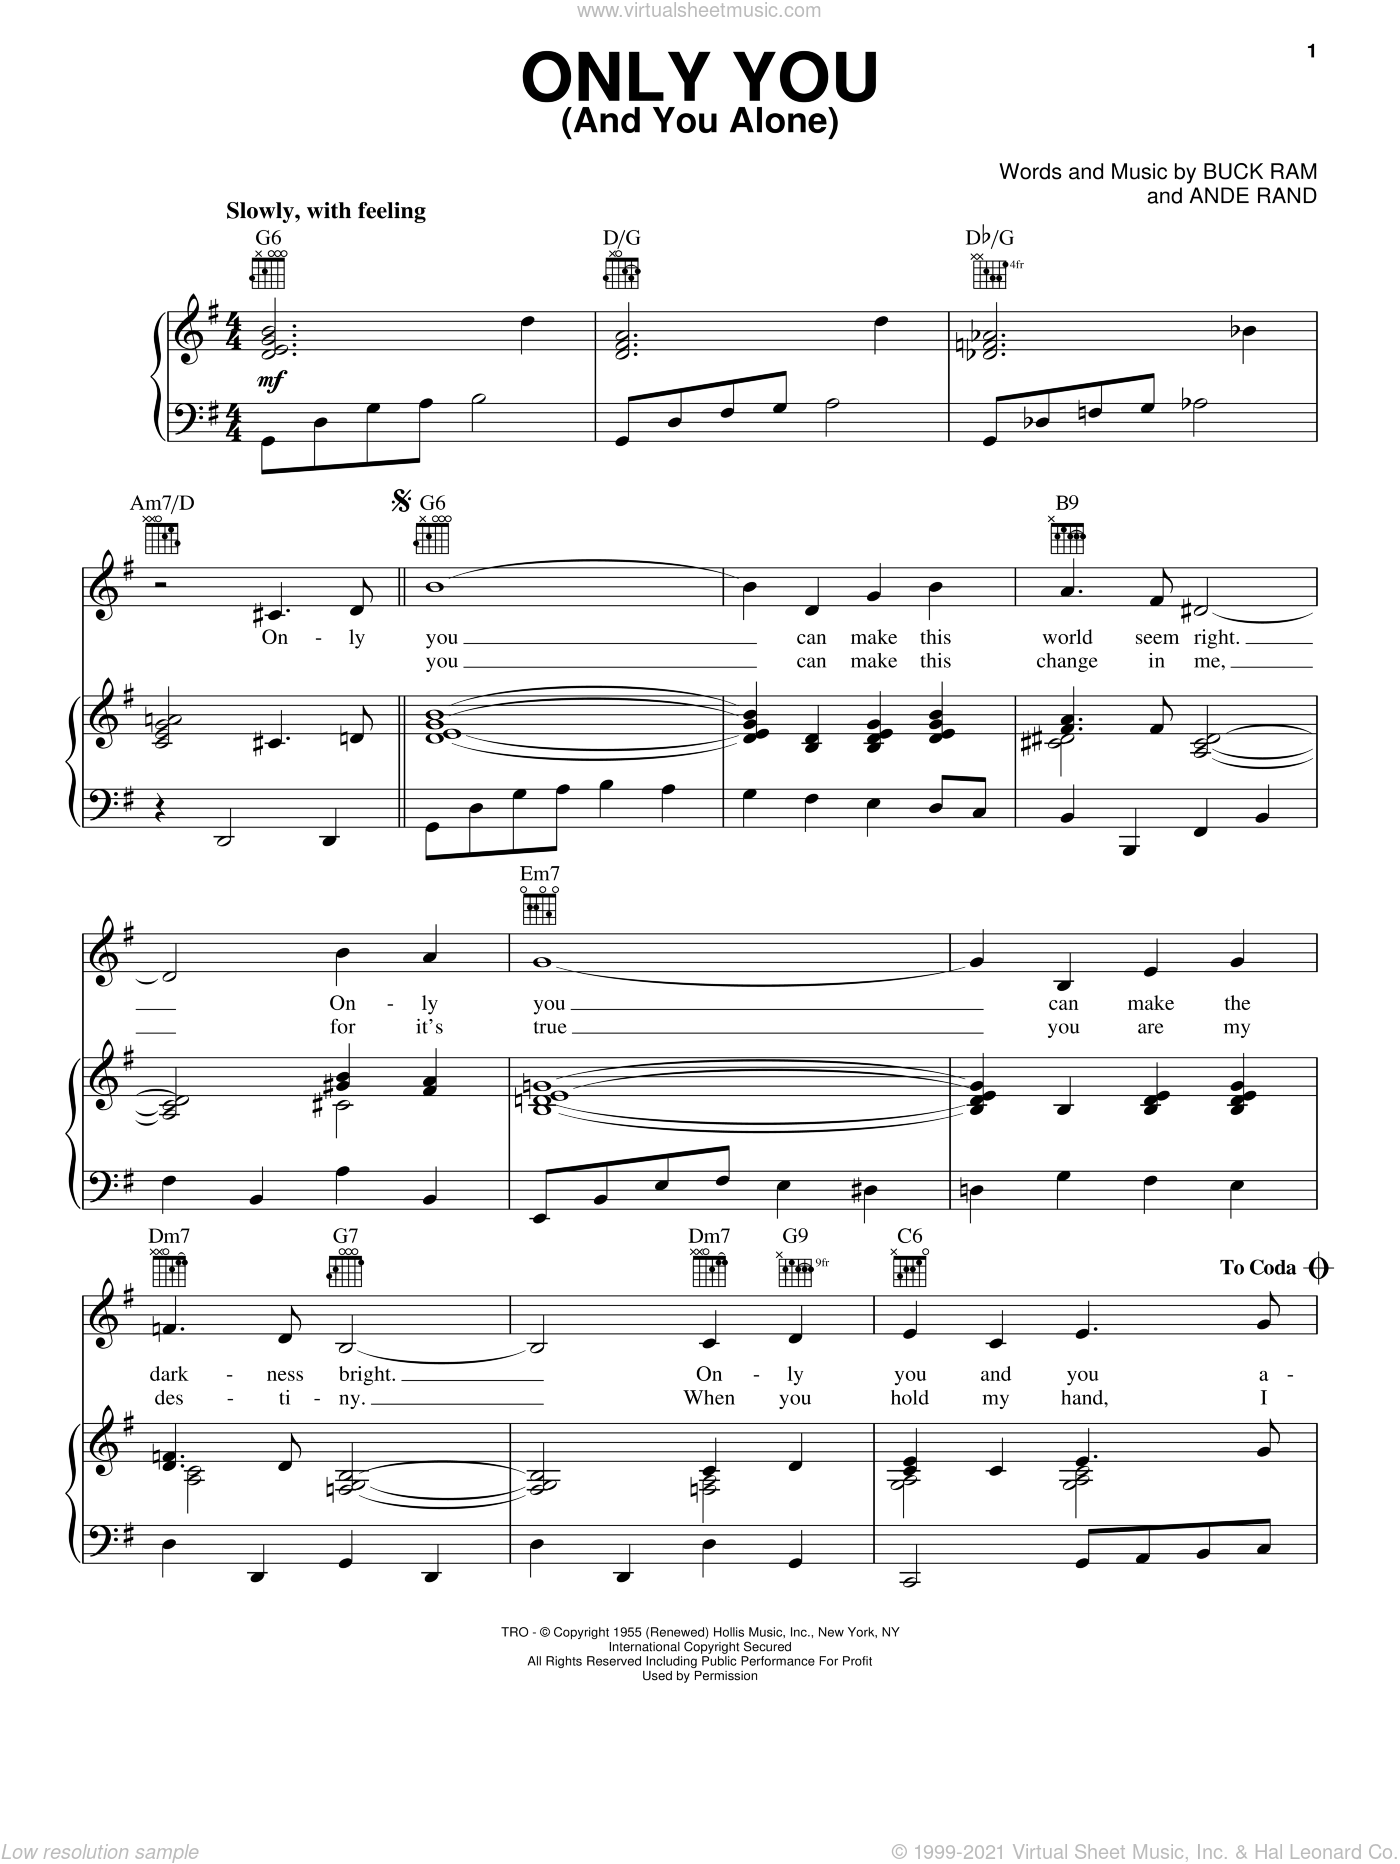 Only You (And You Alone) sheet music for voice, piano or guitar by Buck Ram